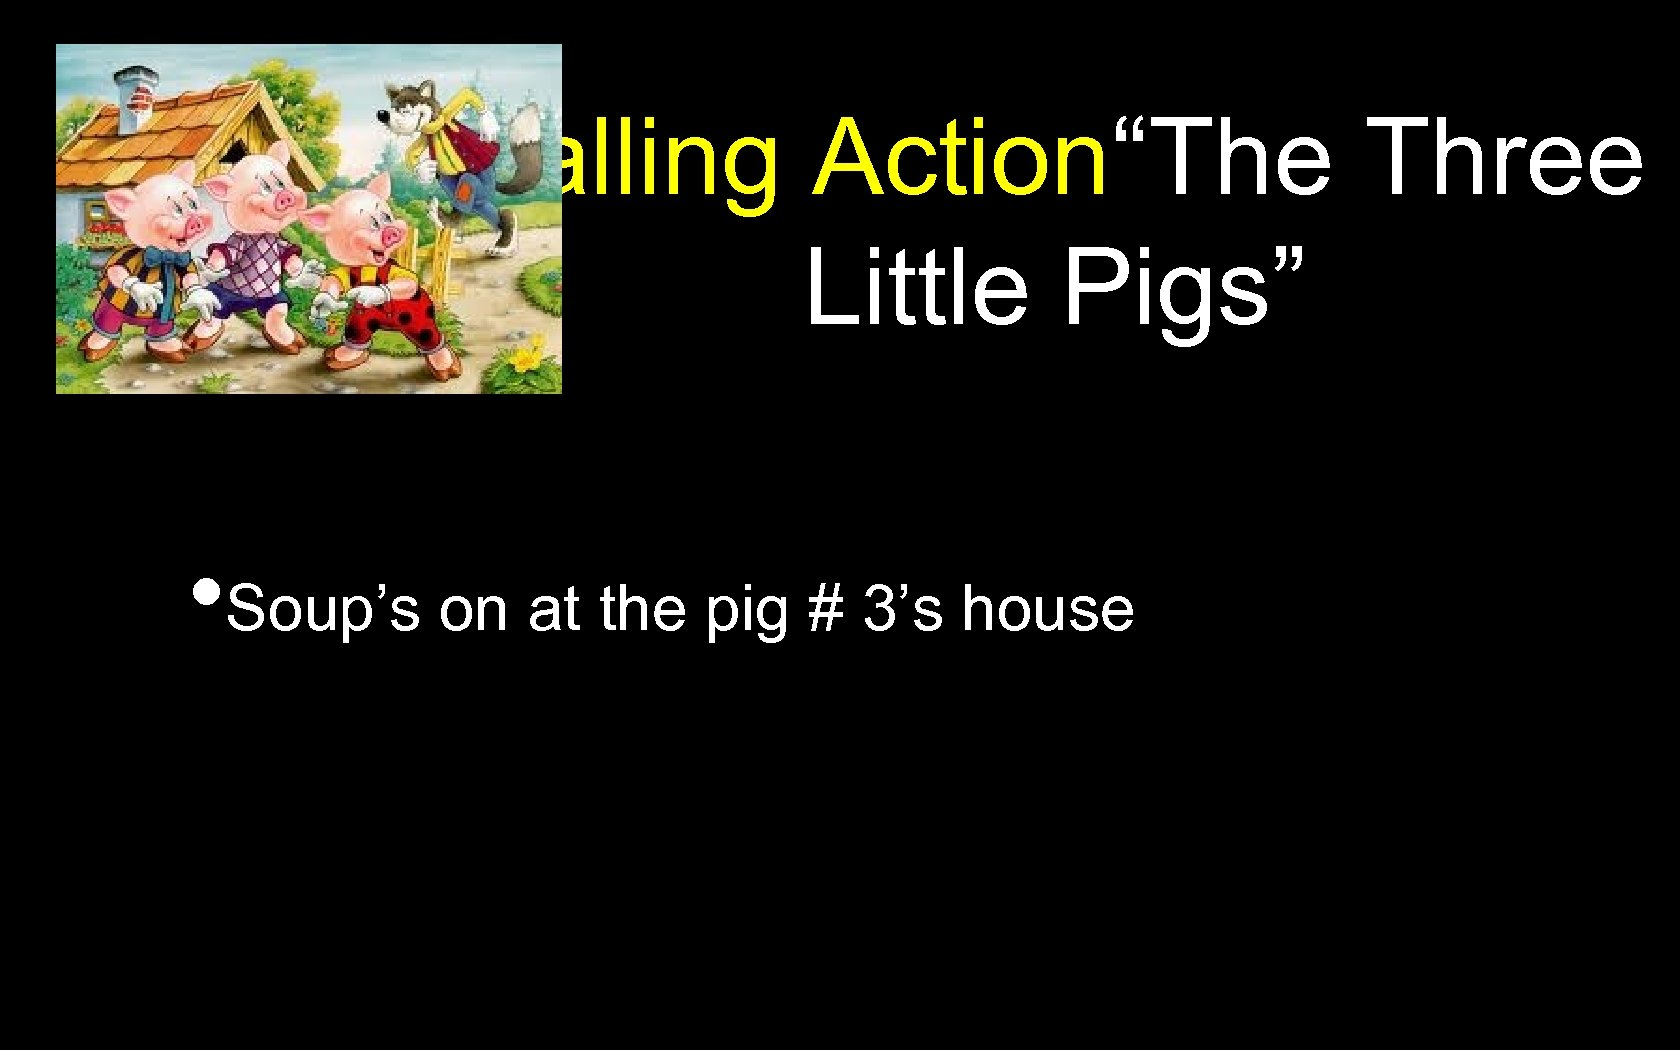 """Falling Action""""The Three Little Pigs"""" • Soup's on at the pig # 3's house"""